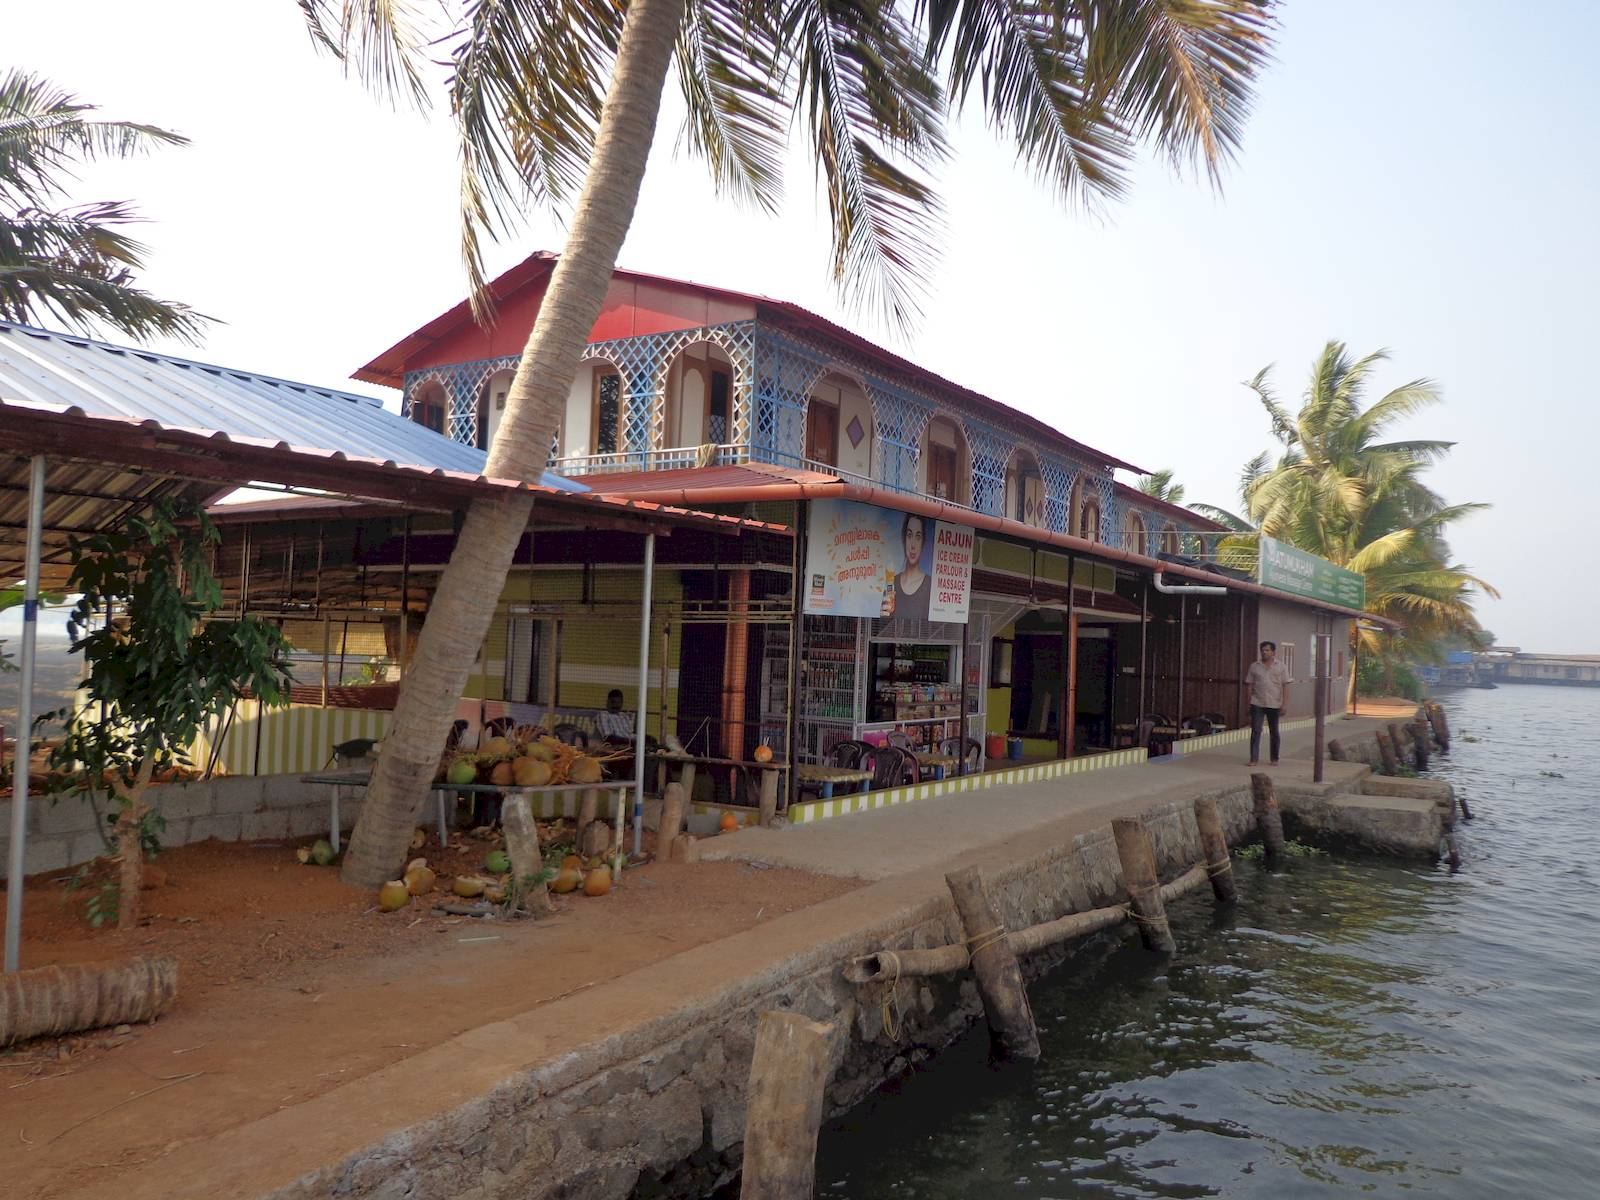 Island restaurants like these offer refreshments to the tourists.